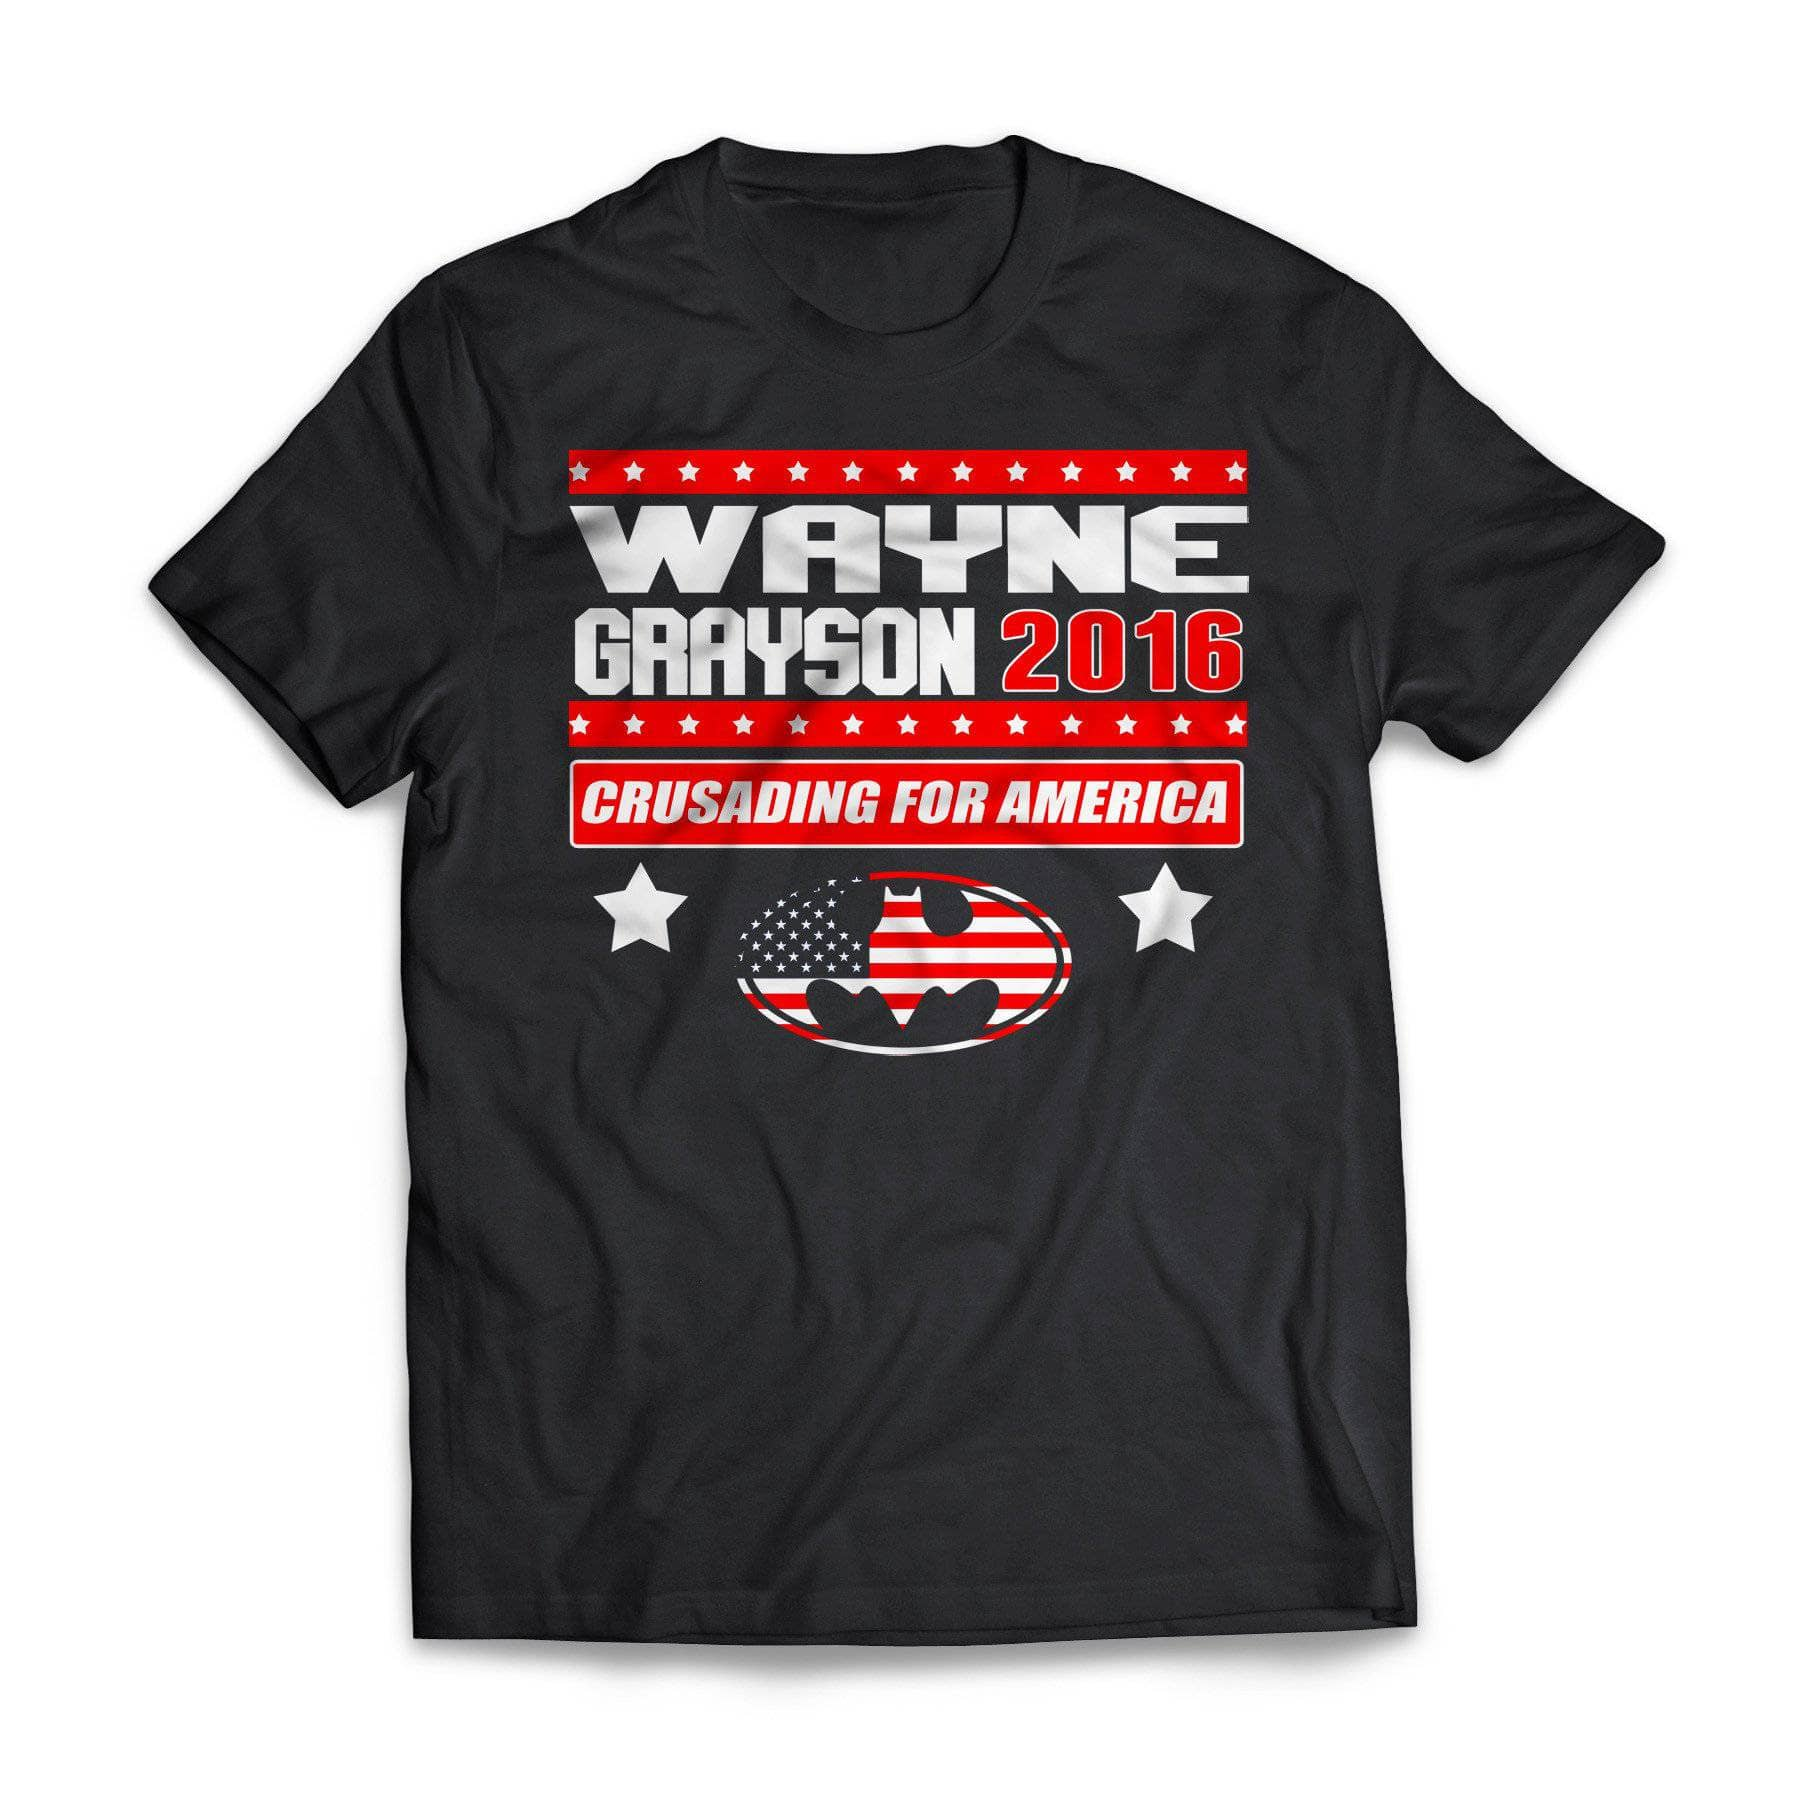 VOTE WAYNE GRAYSON